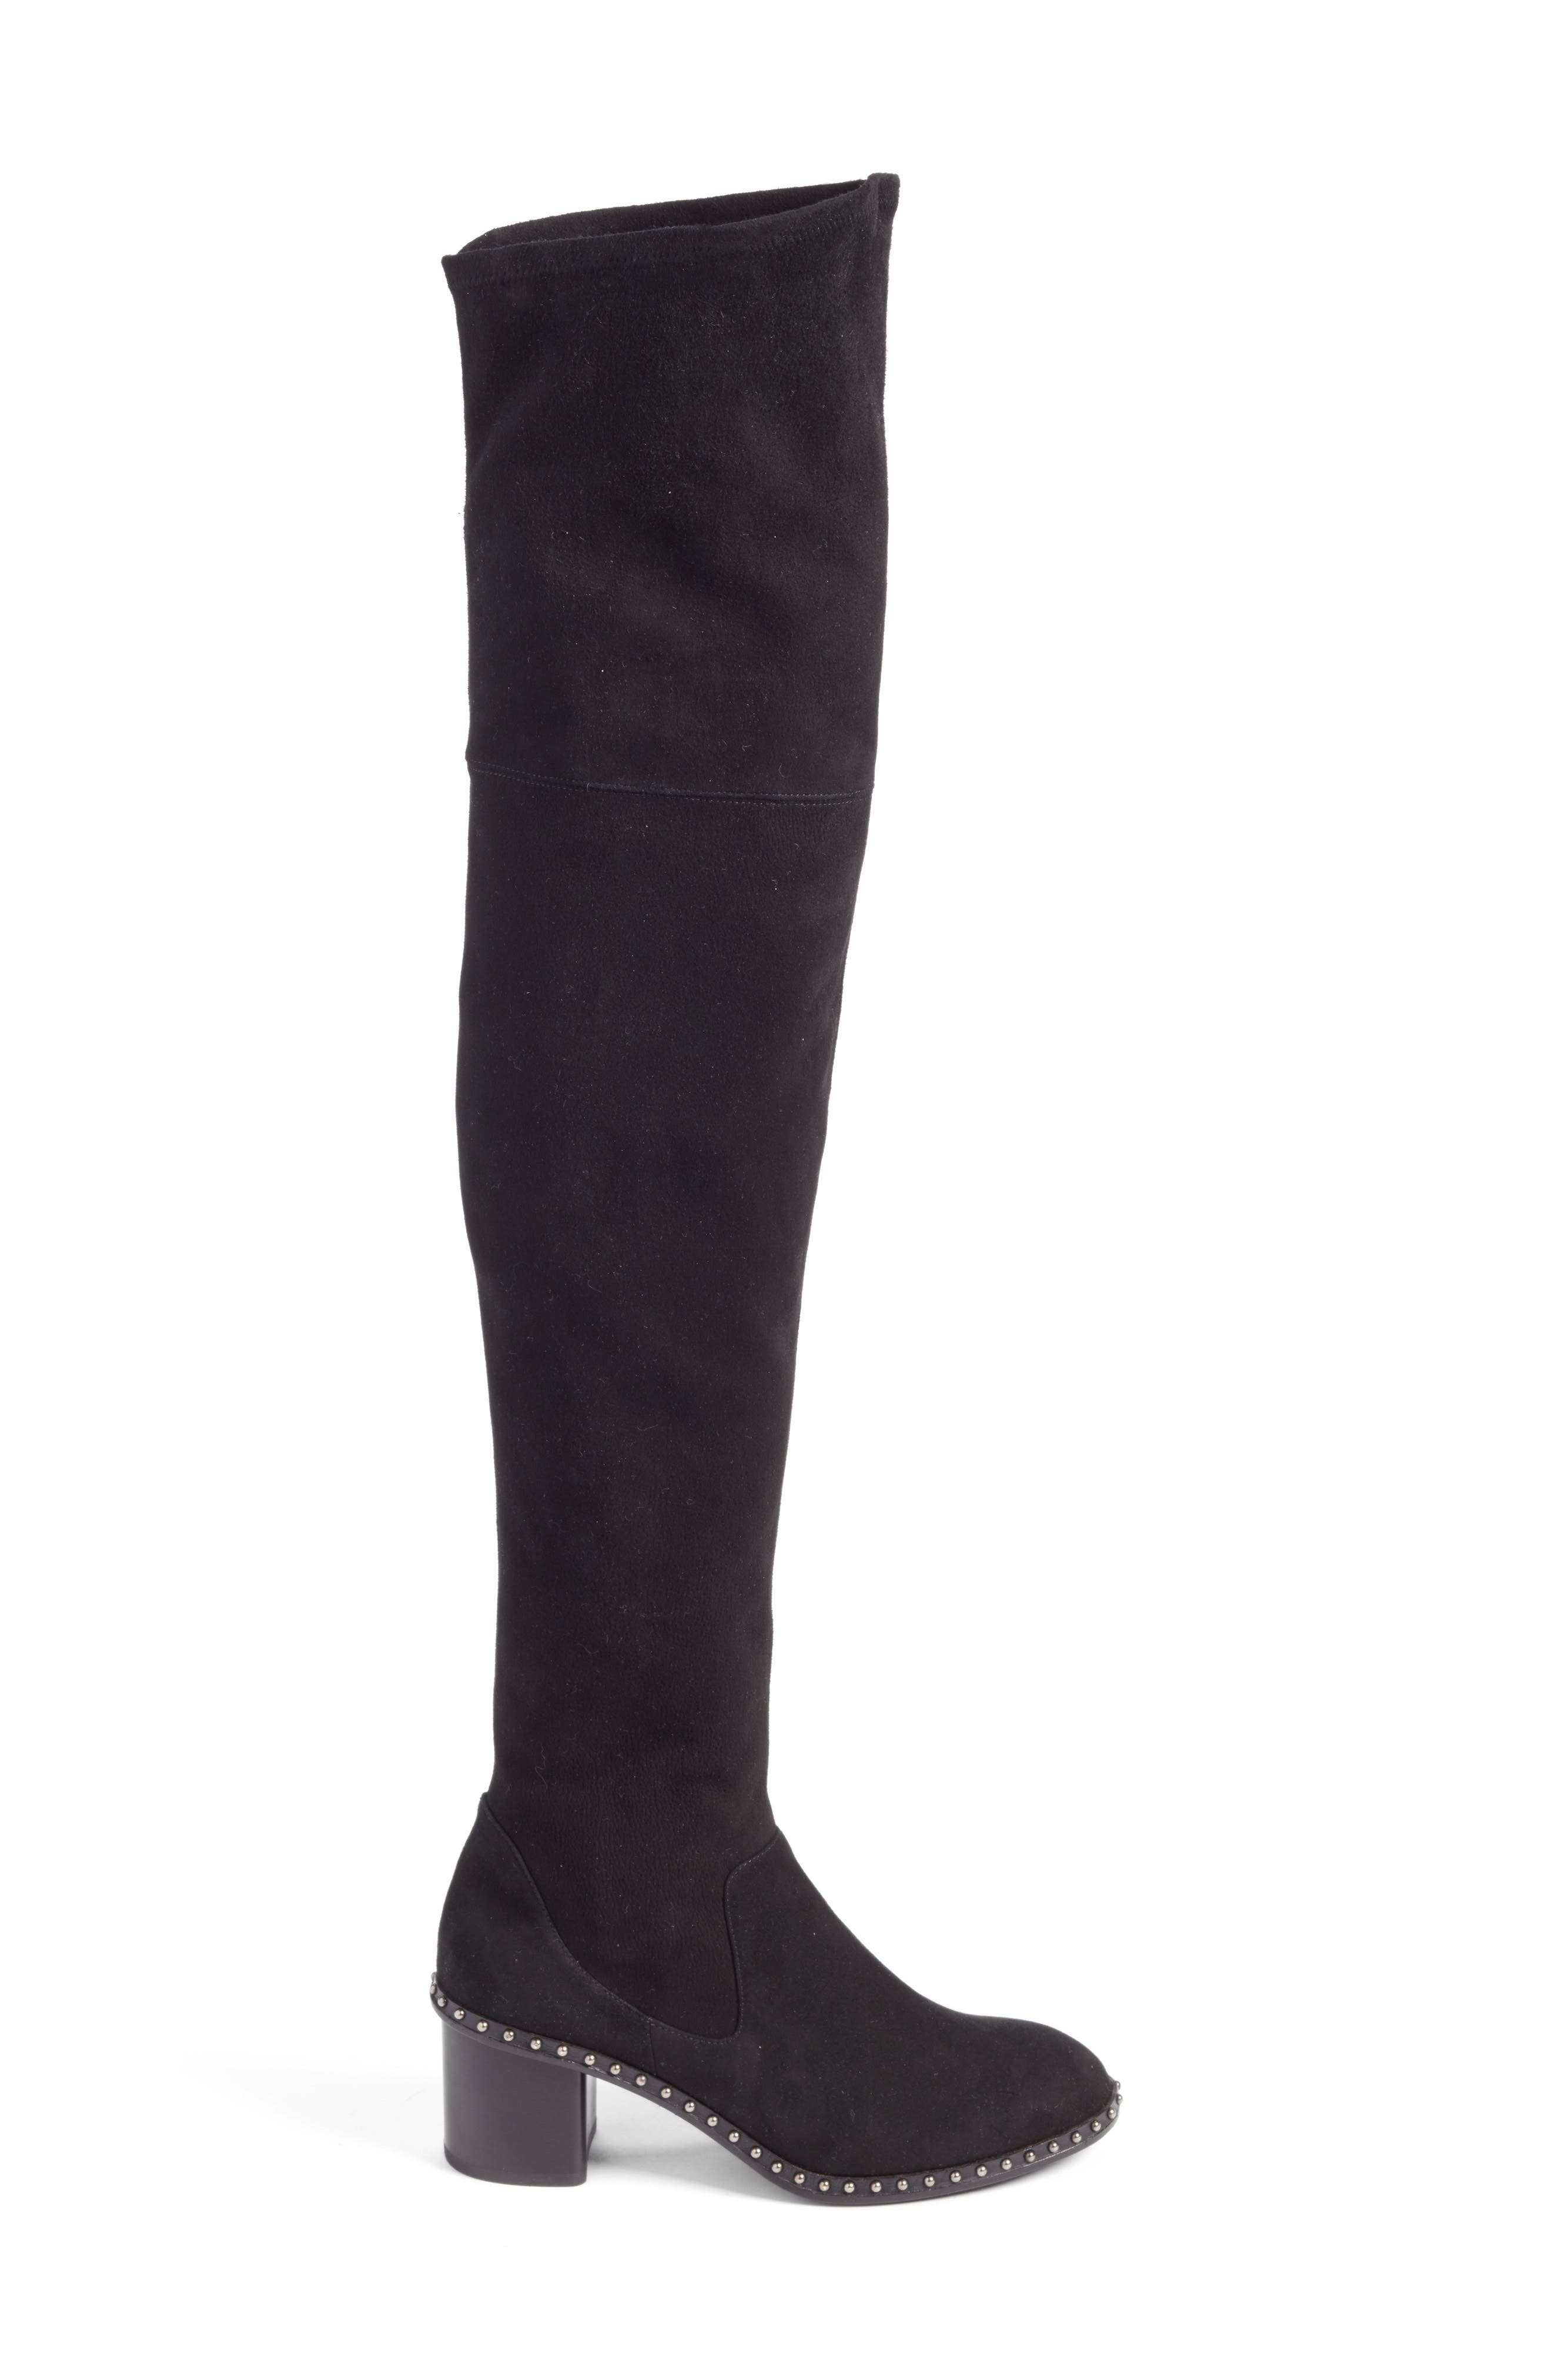 Alternate Image 3  - rag & bone Rina Over the Knee Boot (Women)